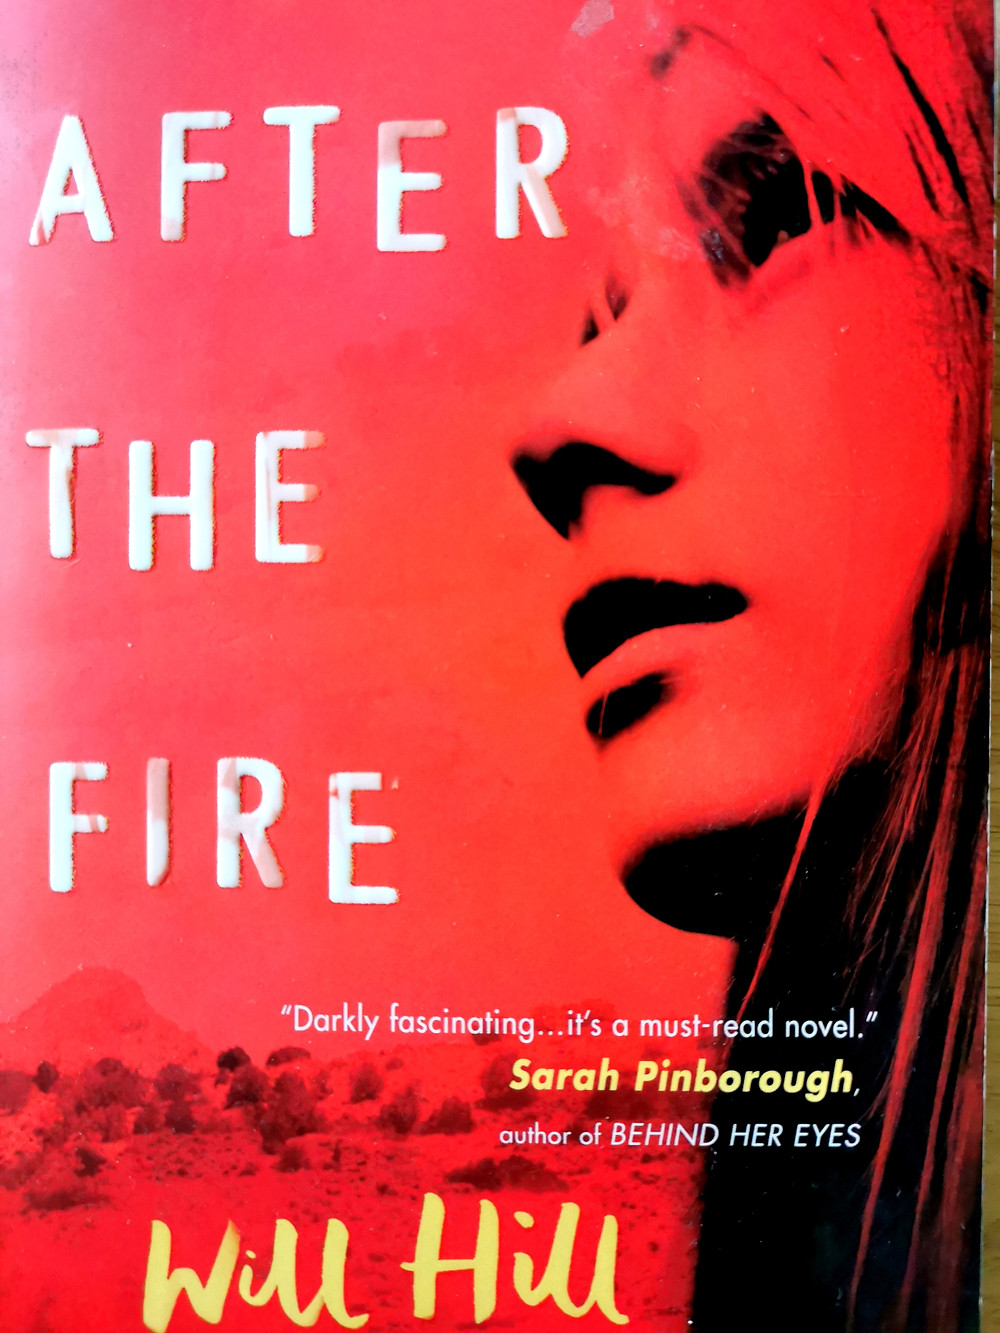 cover photo of Will Hill's 'After the Fire': a red background with a teenage girl's face